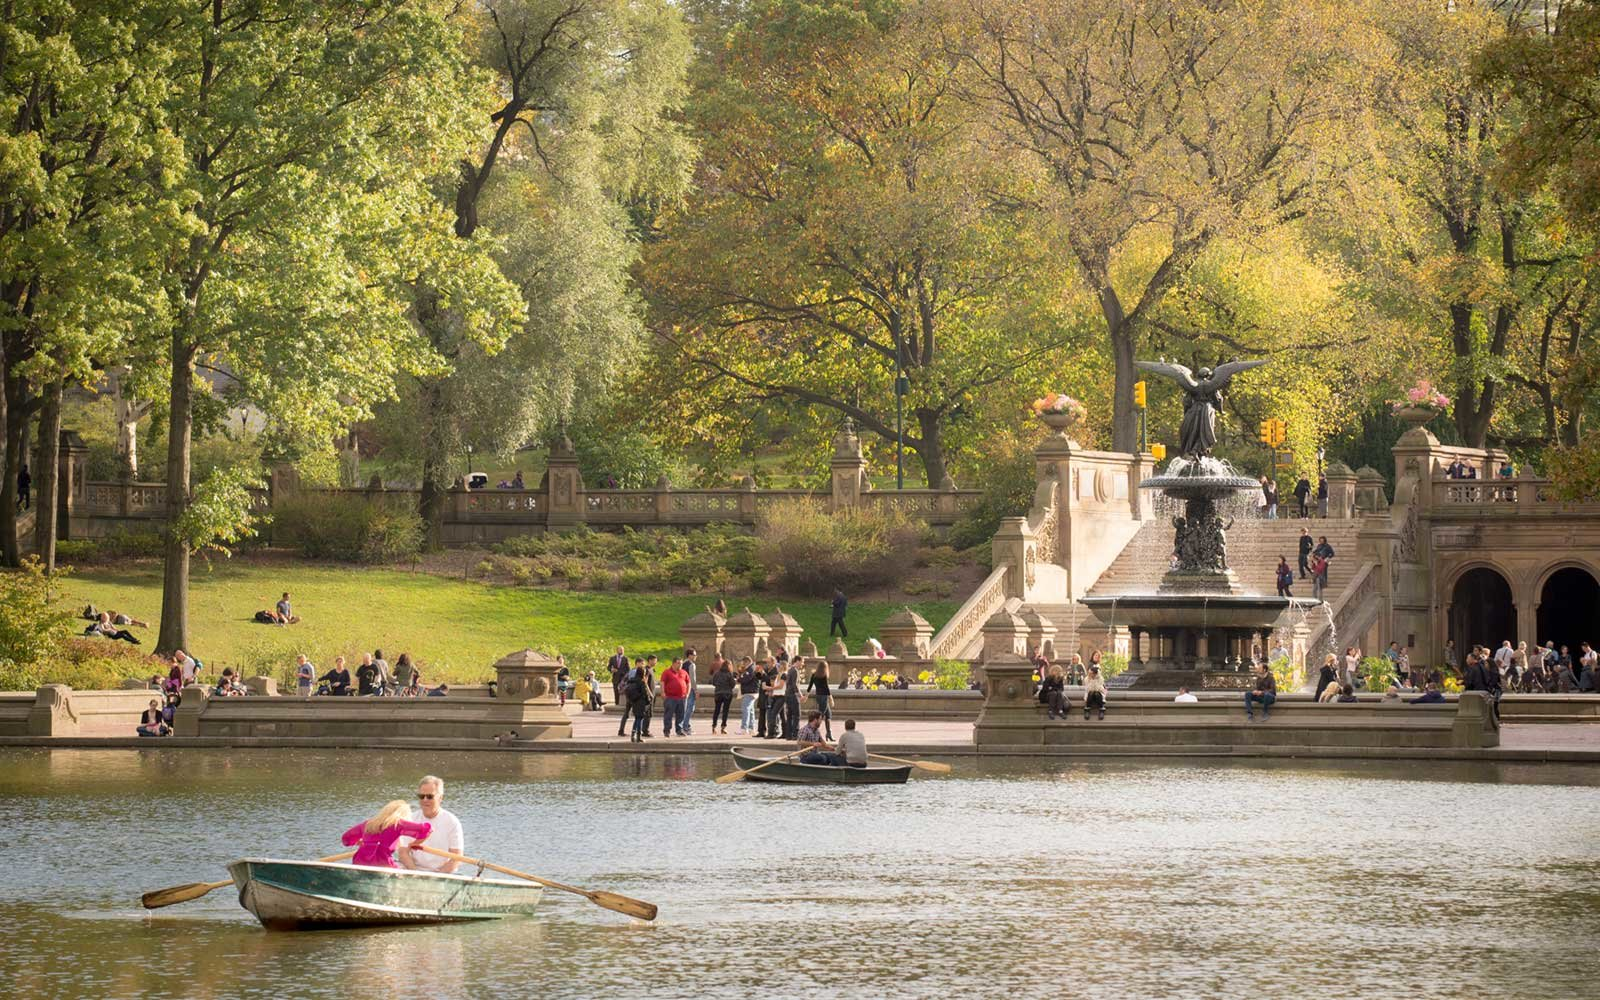 Bethesda Fountain and Terrace, Central Park, New York City